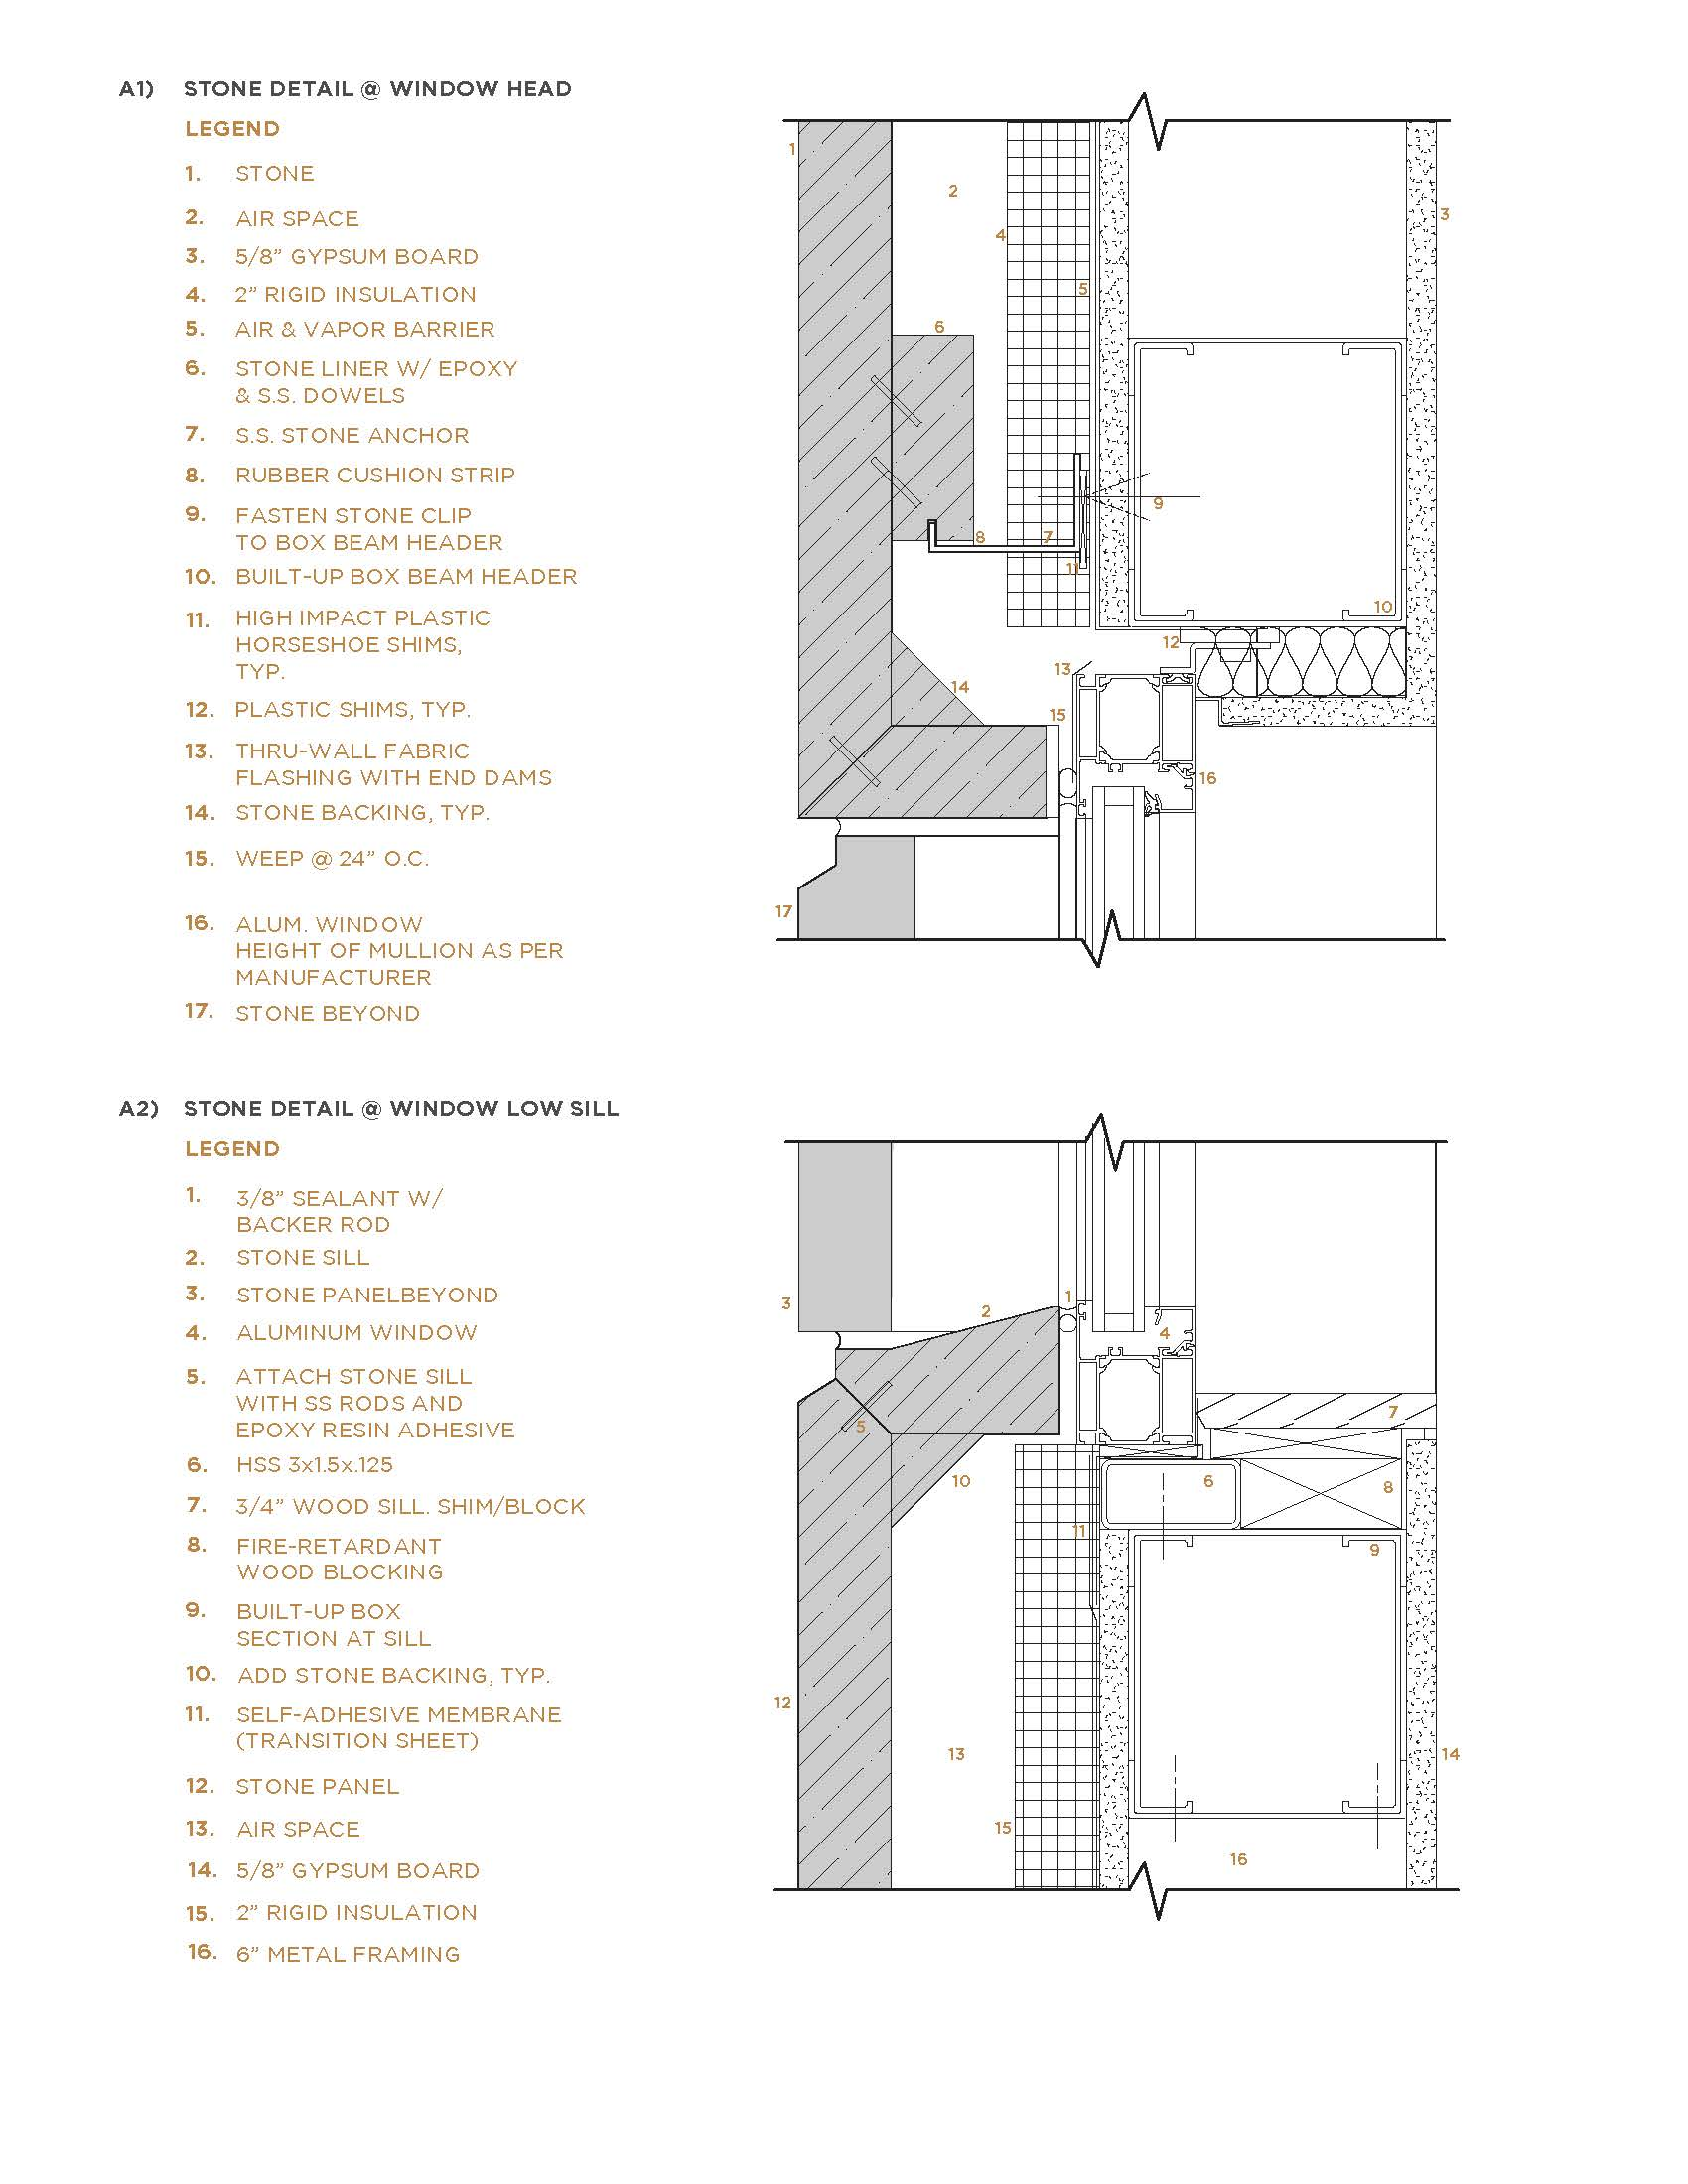 CetraRuddy Architecture DPC